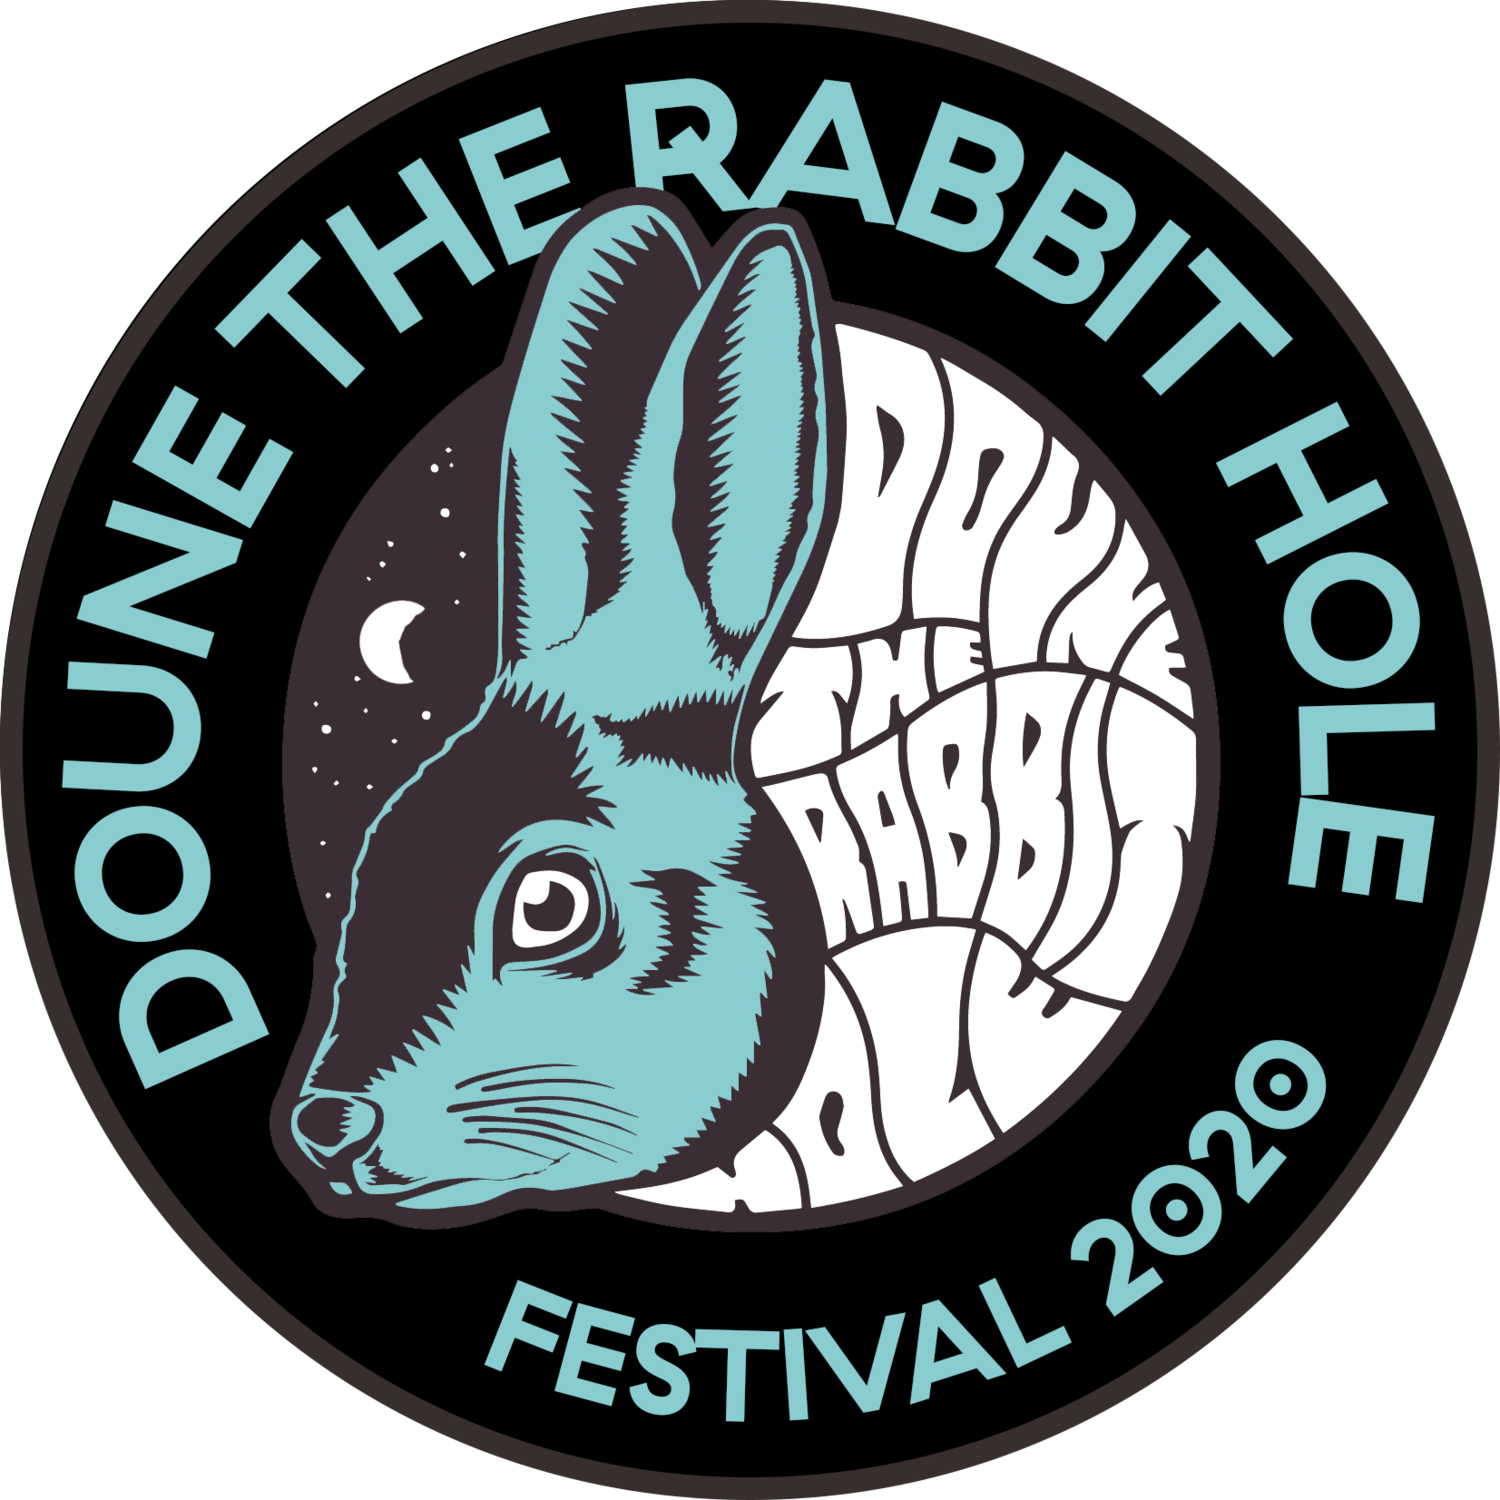 Doune the Rabbit Hole Festival